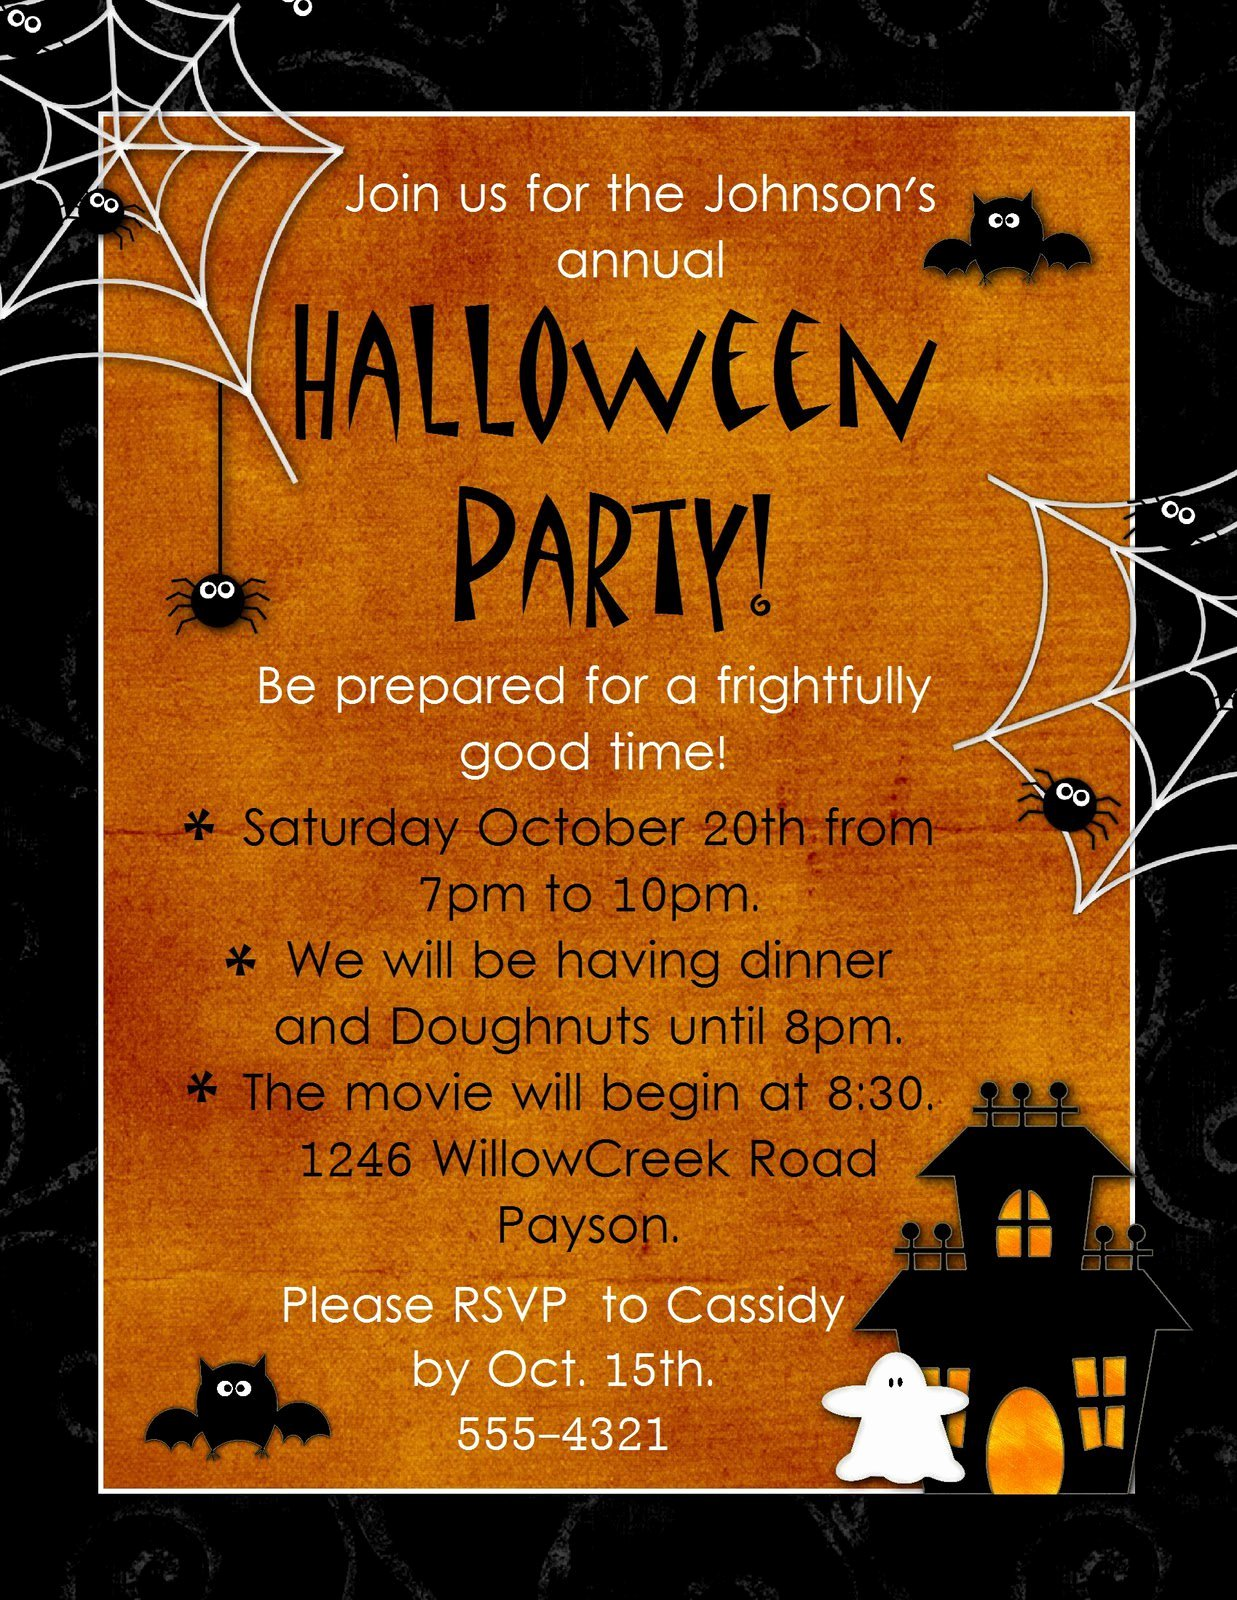 Halloween Party Invitations Template Luxury Halloween Party Invitations Blank